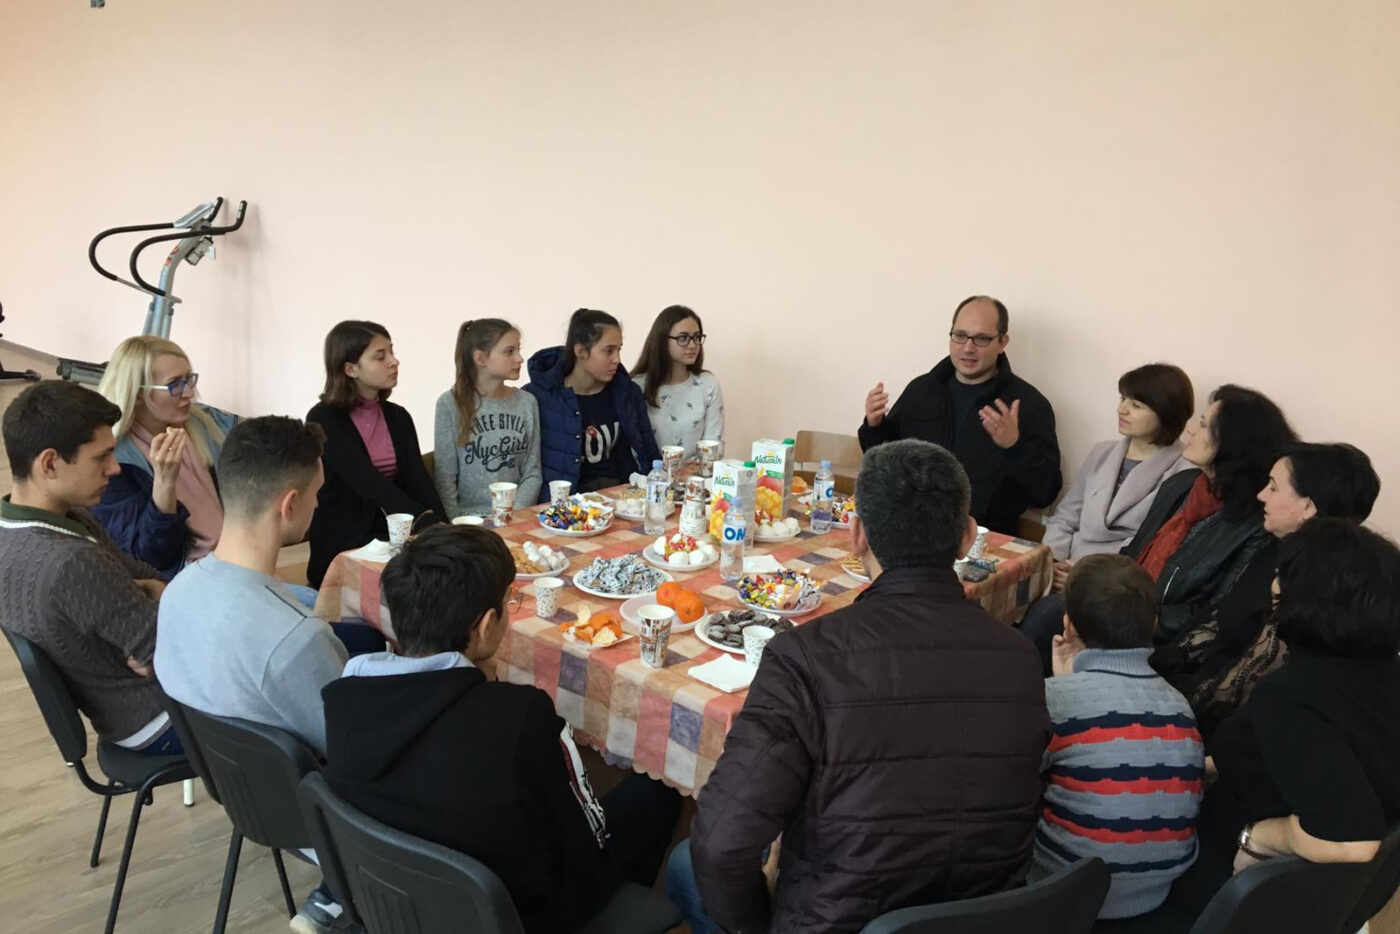 Joseph Bednarek, Global Fund for Children's Senior Director of Global Grantmaking, meeting with GFC partner Institute for Rural Initiatives and young people in Moldova.